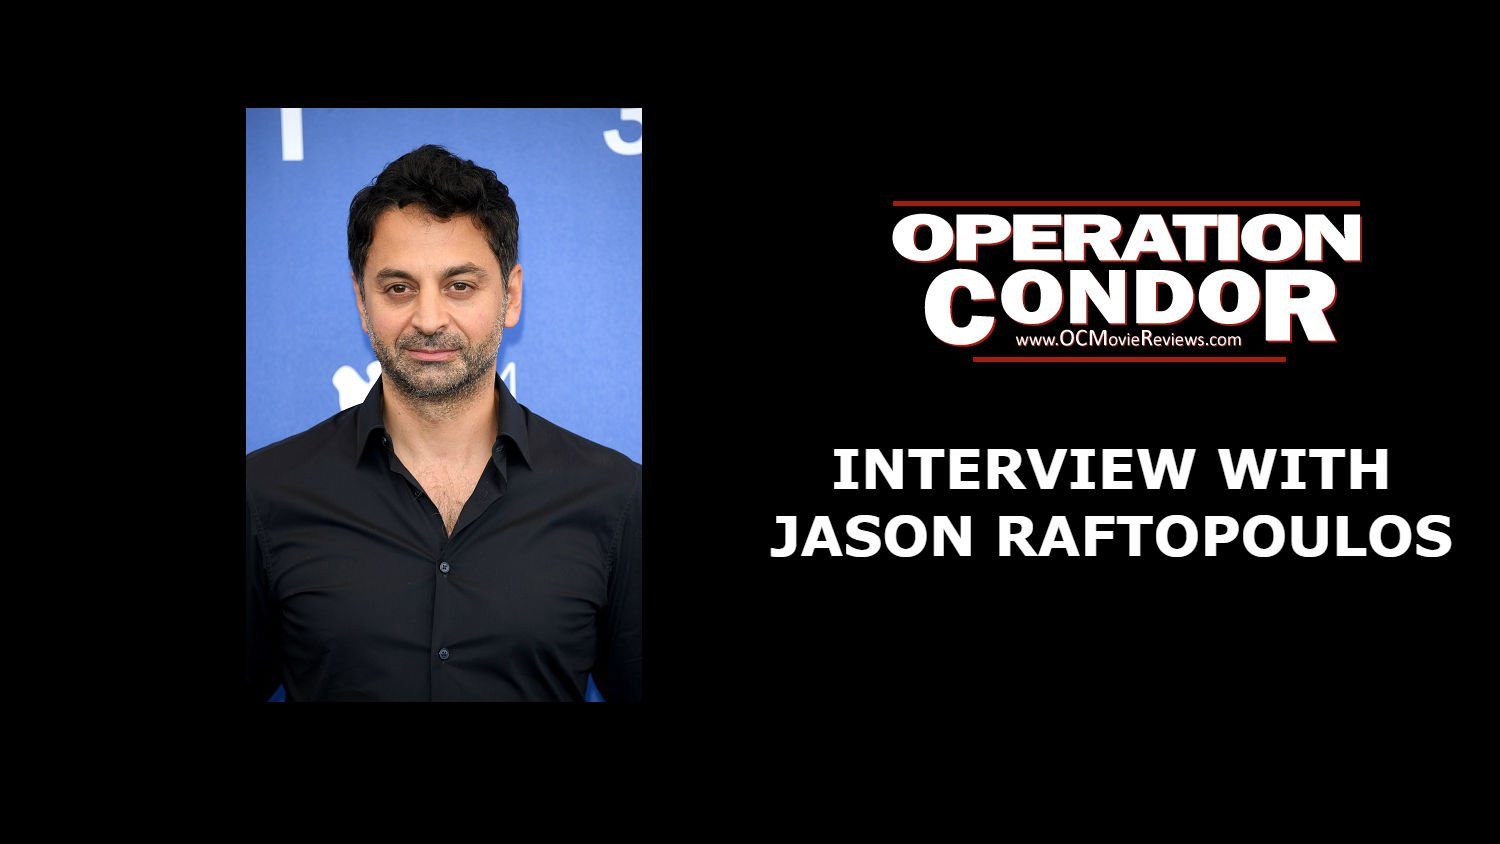 Interview With Jason Raftopoulos – West Of Sunshine Writer & Director - OC Movie Reviews - Movie Reviews, Movie News, Documentary Reviews, Short Films, Short Film Reviews, Trailers, Movie Trailers, Interviews, film reviews, film news, hollywood, indie films, documentaries